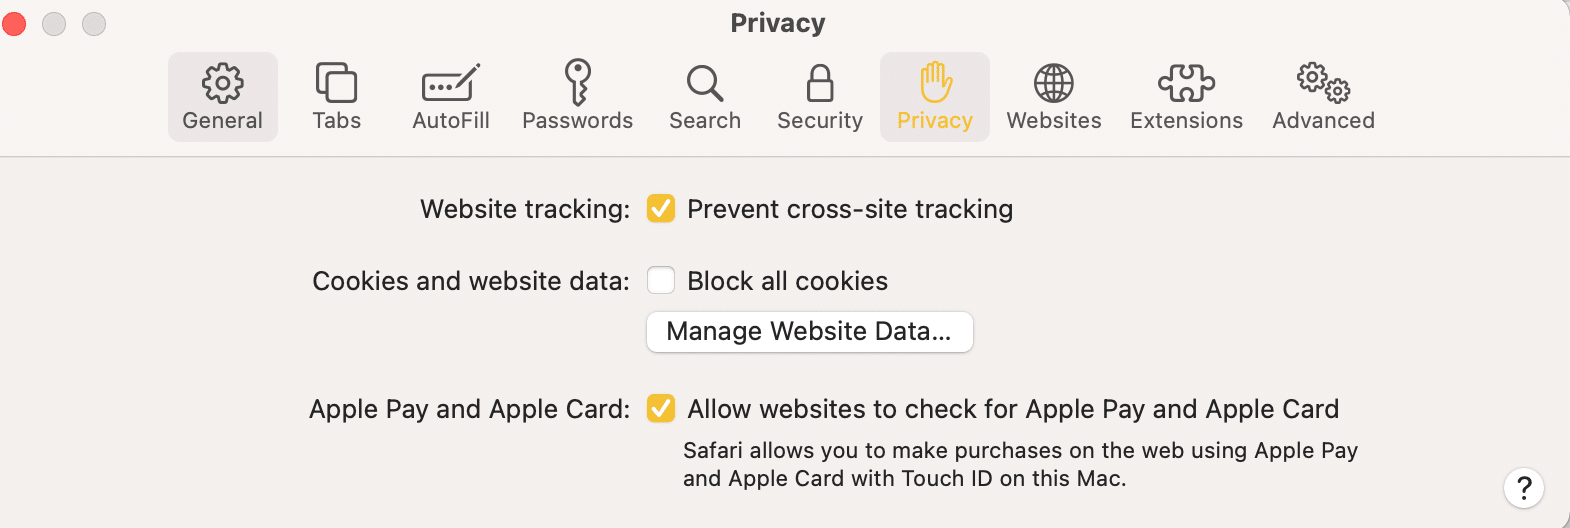 Click Privacy then, manage website data